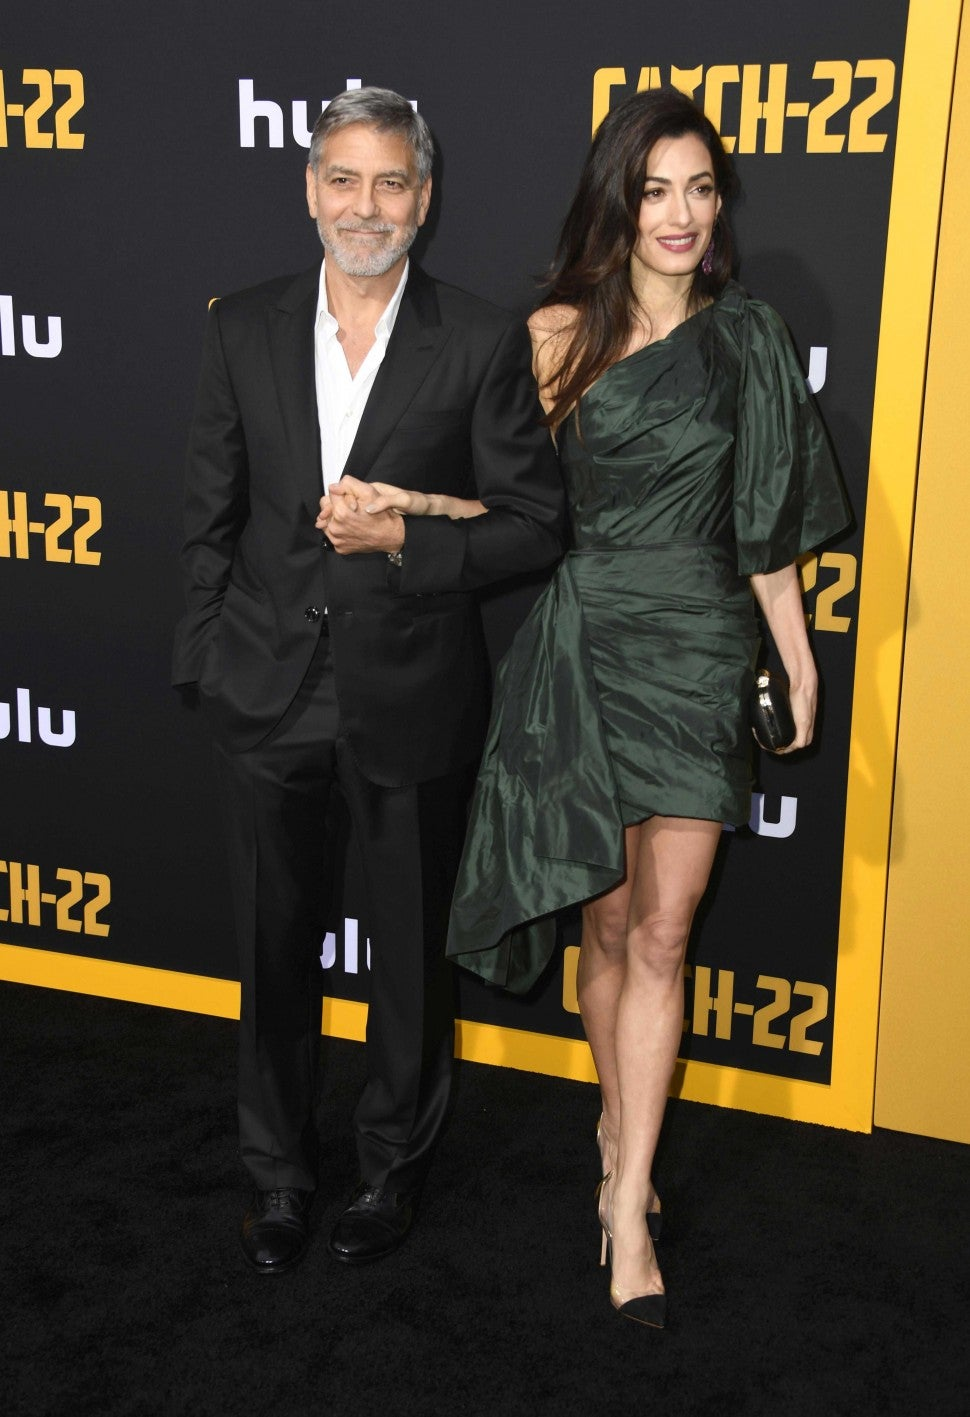 George Clooney and Amal Clooney at the premiere of 'Catch-22' in Hollywood on May 7.